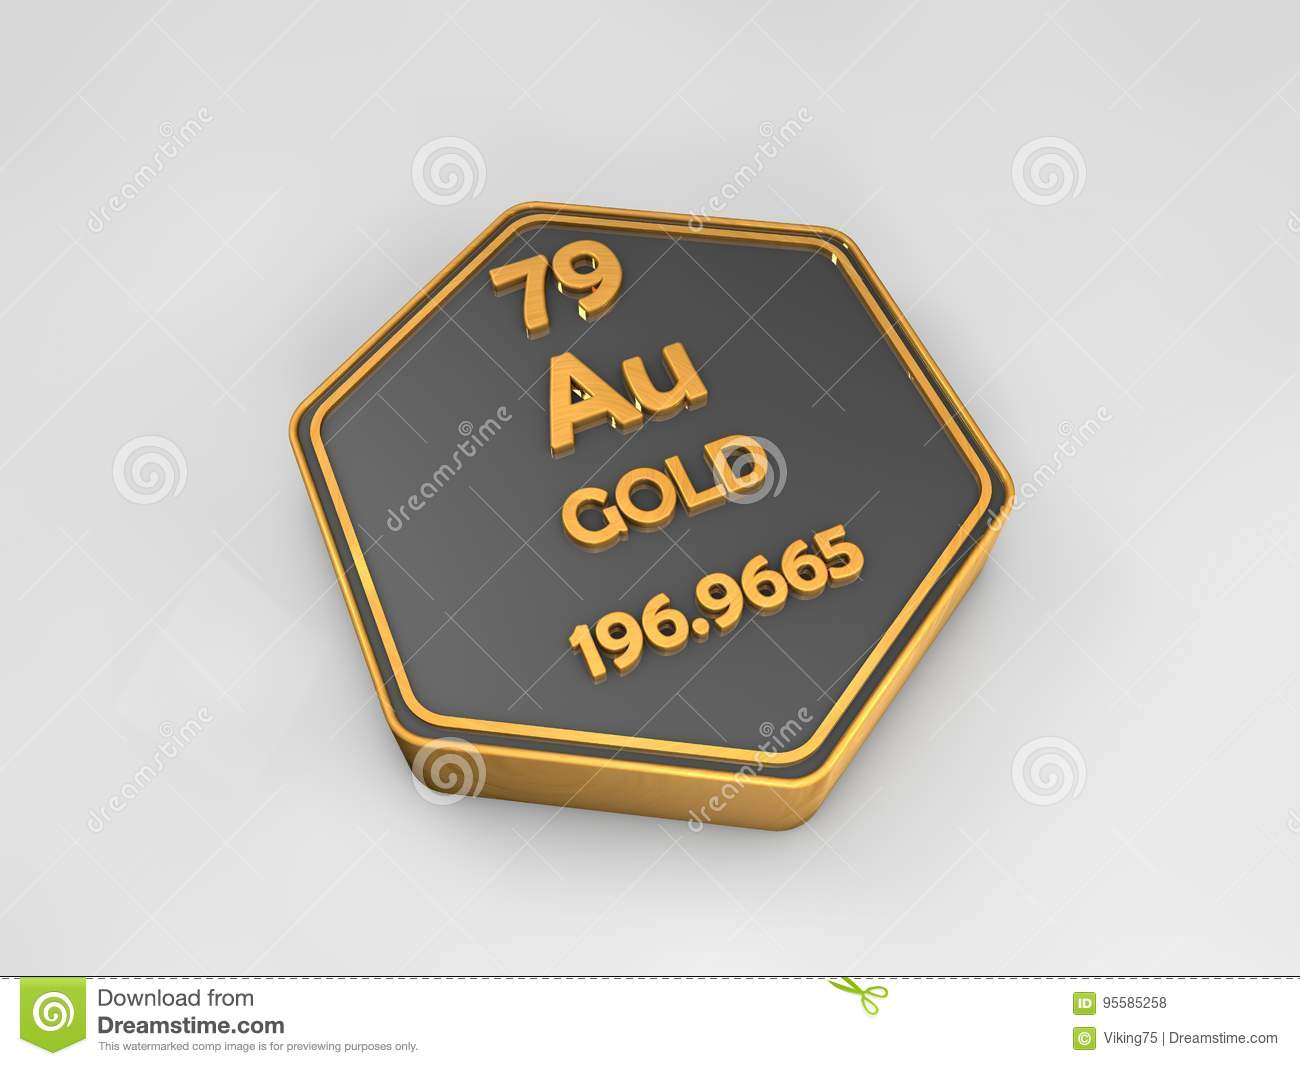 Chemical element gold from the periodic table stock illustration gold au chemical element periodic table hexagonal shape royalty free stock photos urtaz Image collections